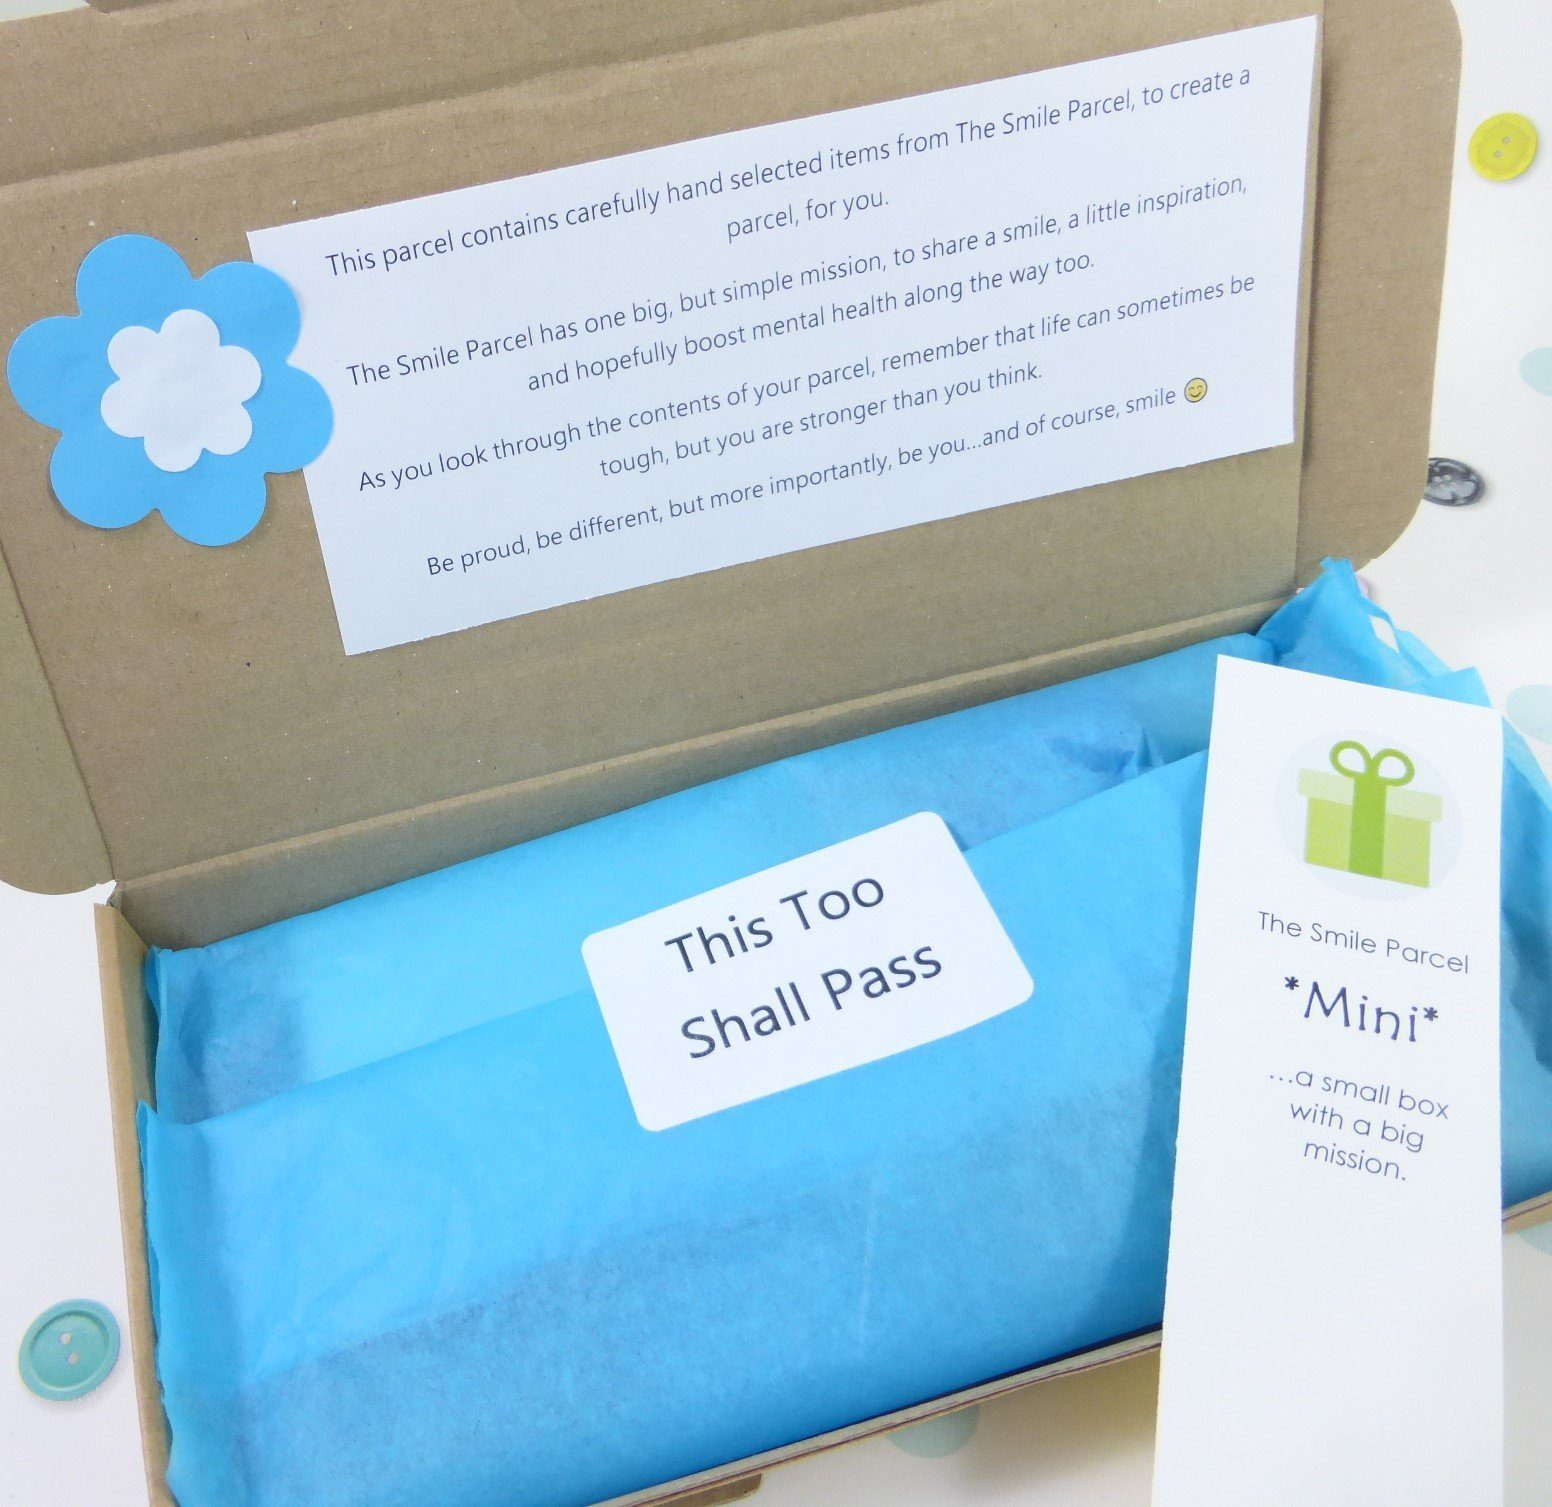 Letterbox Friendly, Pick Me Up Gift, The Smile Parcel Mini, Happy Post, Mental Health Gift, Anxiety Box Kind Shop 3